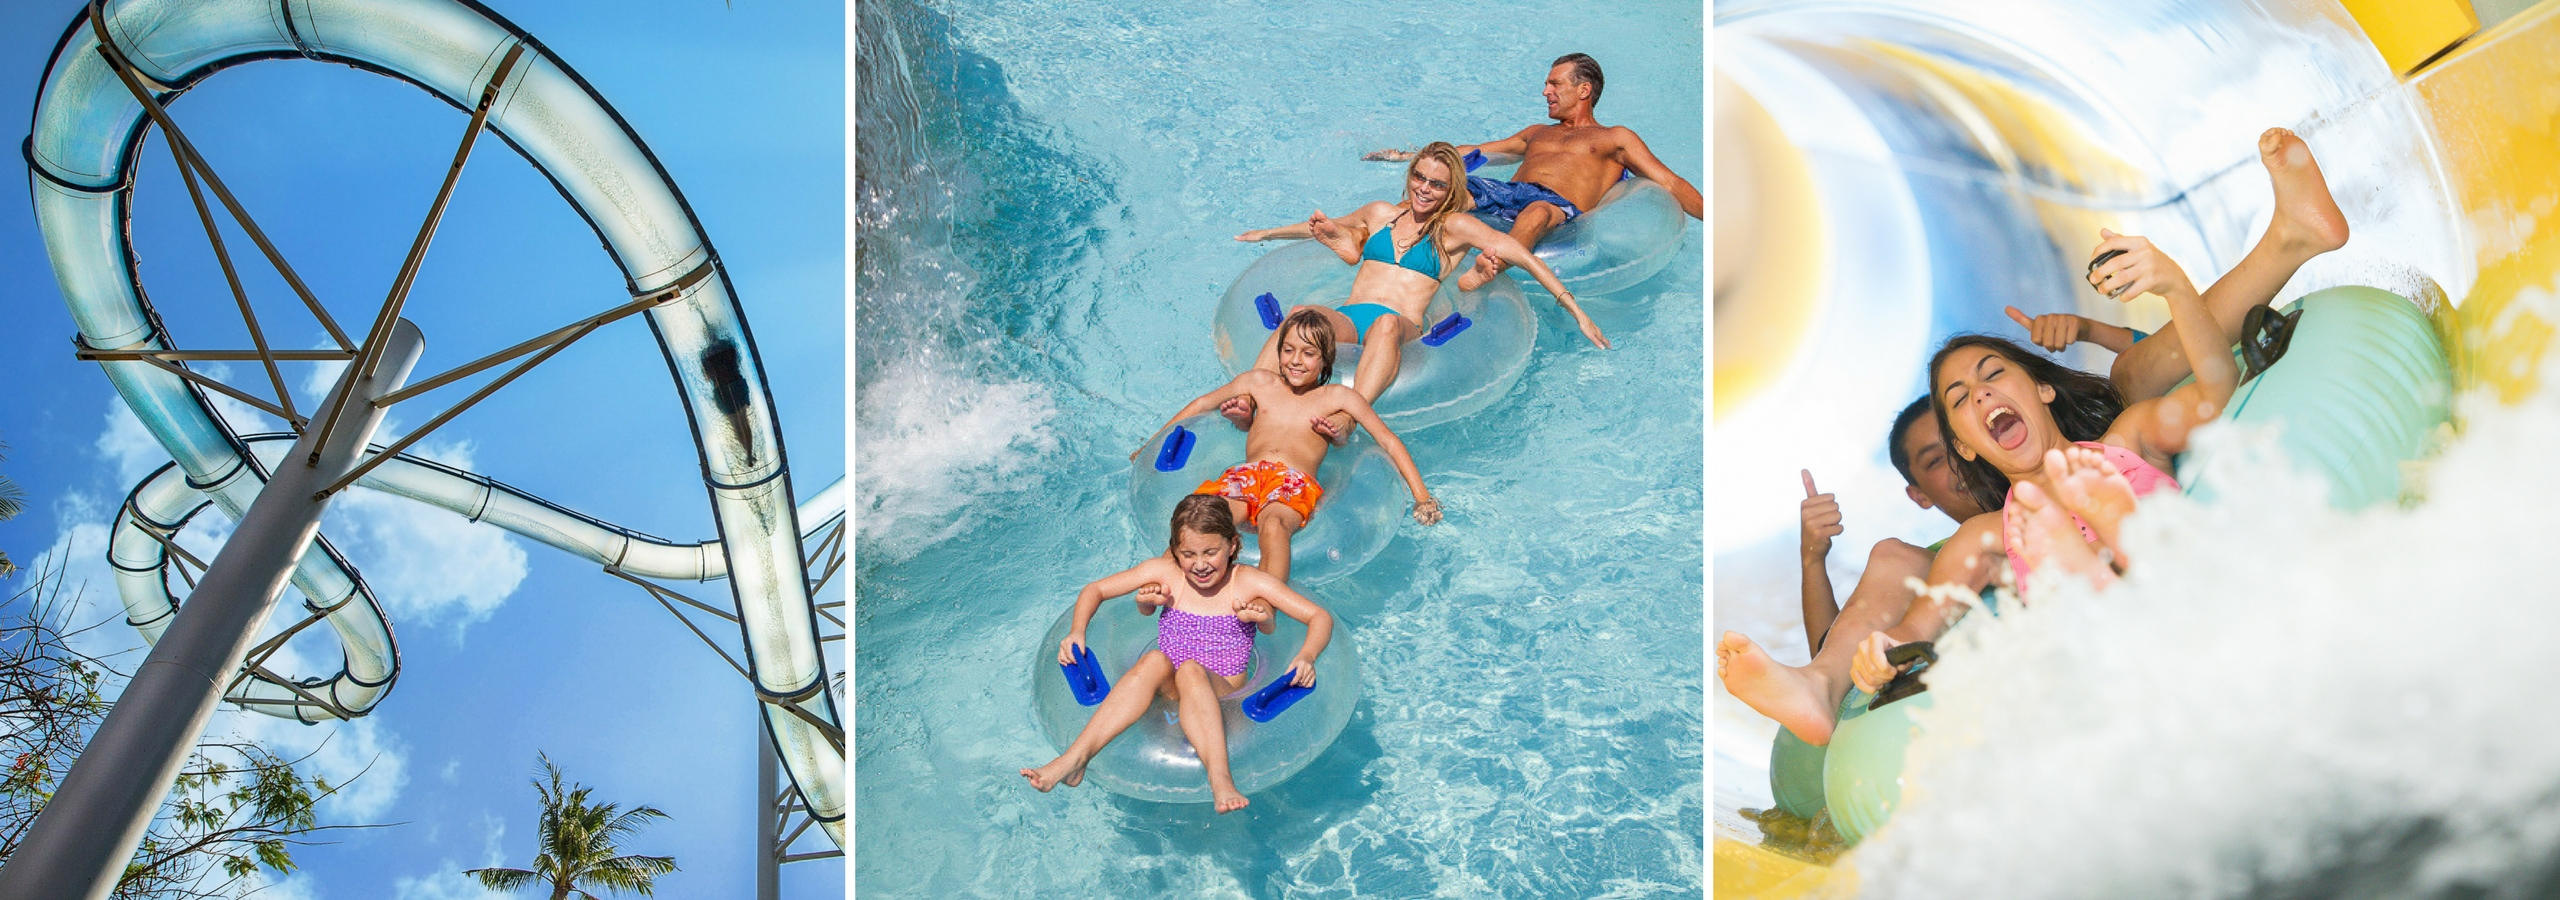 Outer Banks Waterpark